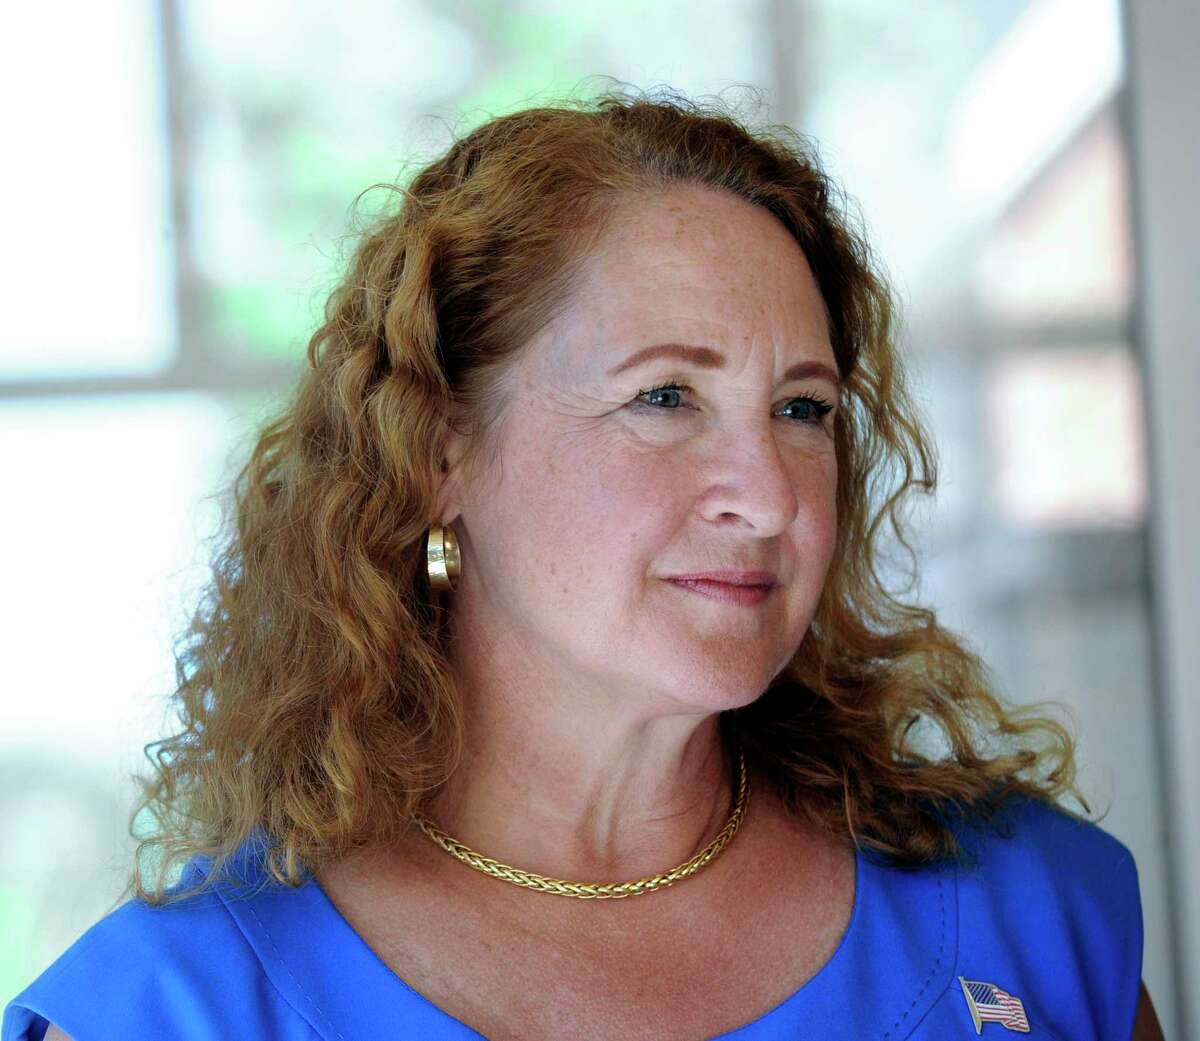 Then-U.S. Rep. Elizabeth Esty visits with seniors at the Brookfield Senior Center, Monday, July 9, 2018.